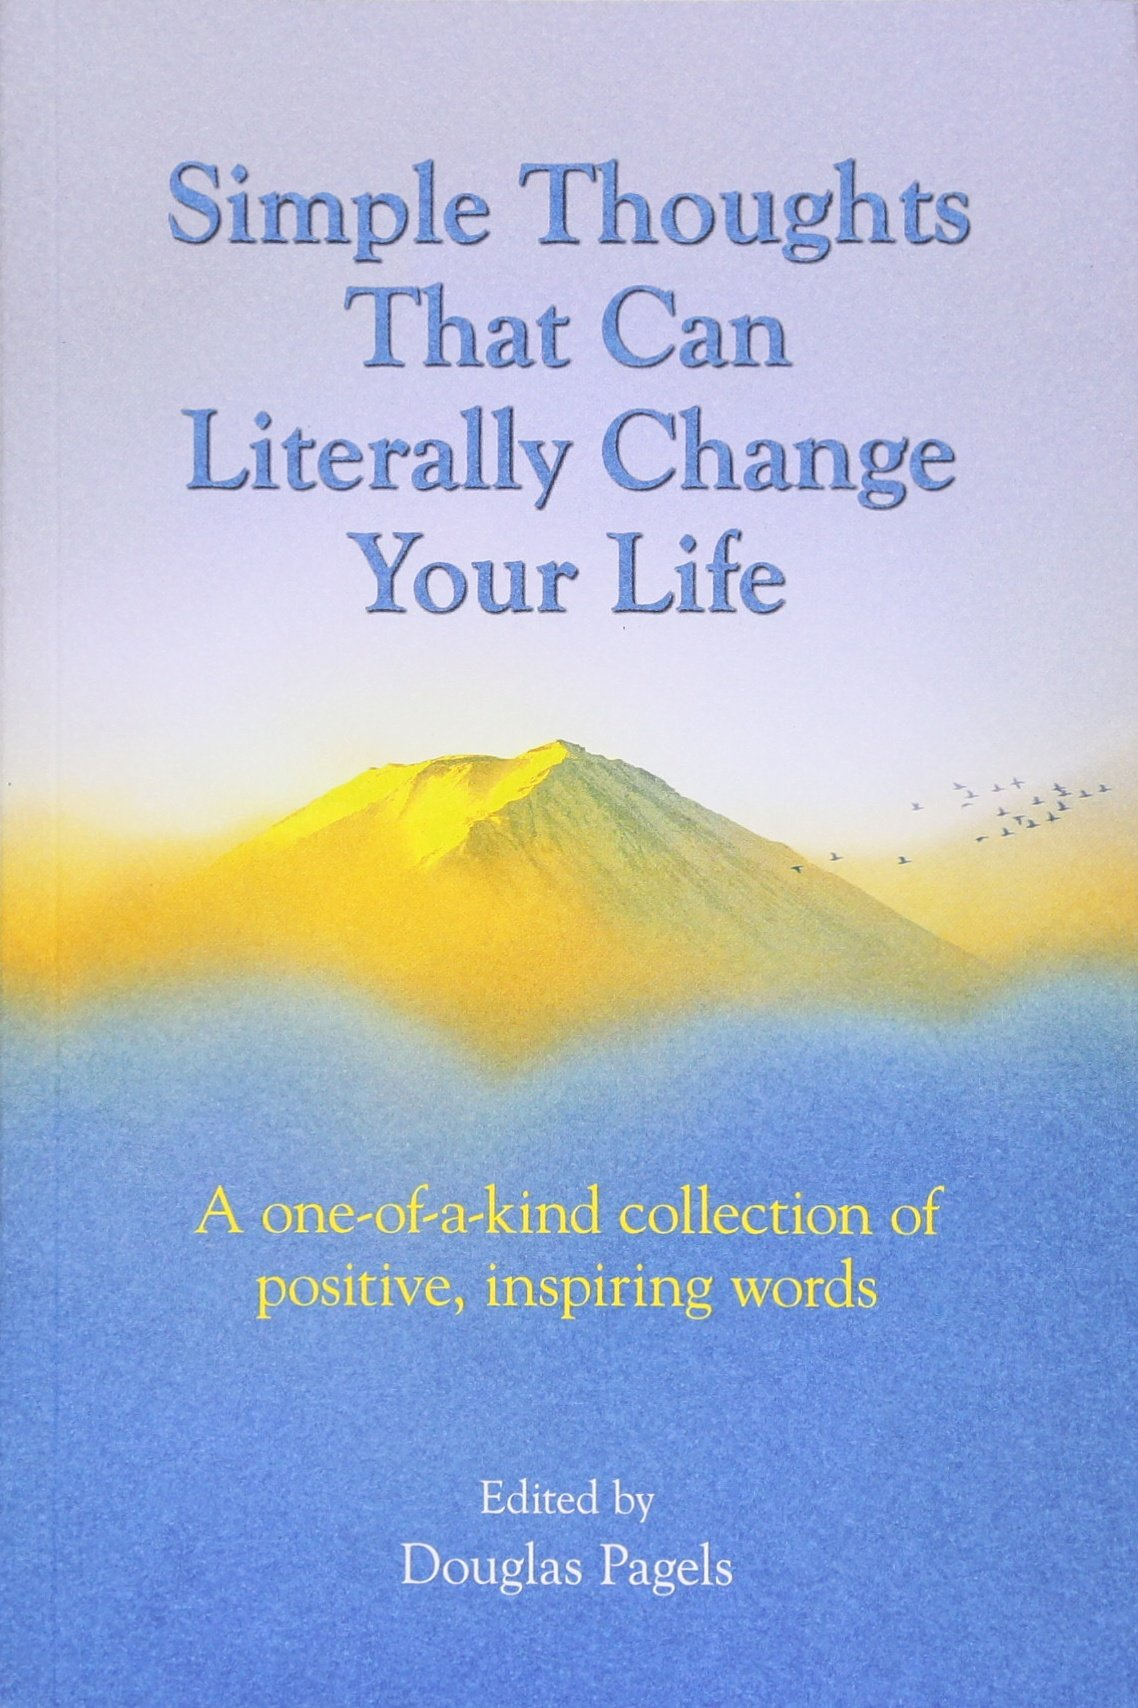 Simple Thoughts That Can Literally Change Your Life A One Of A Kind Collection Of Positive Inspiring Words Douglas Pagels Douglas Pagels 9781680881912 Amazon Com Books